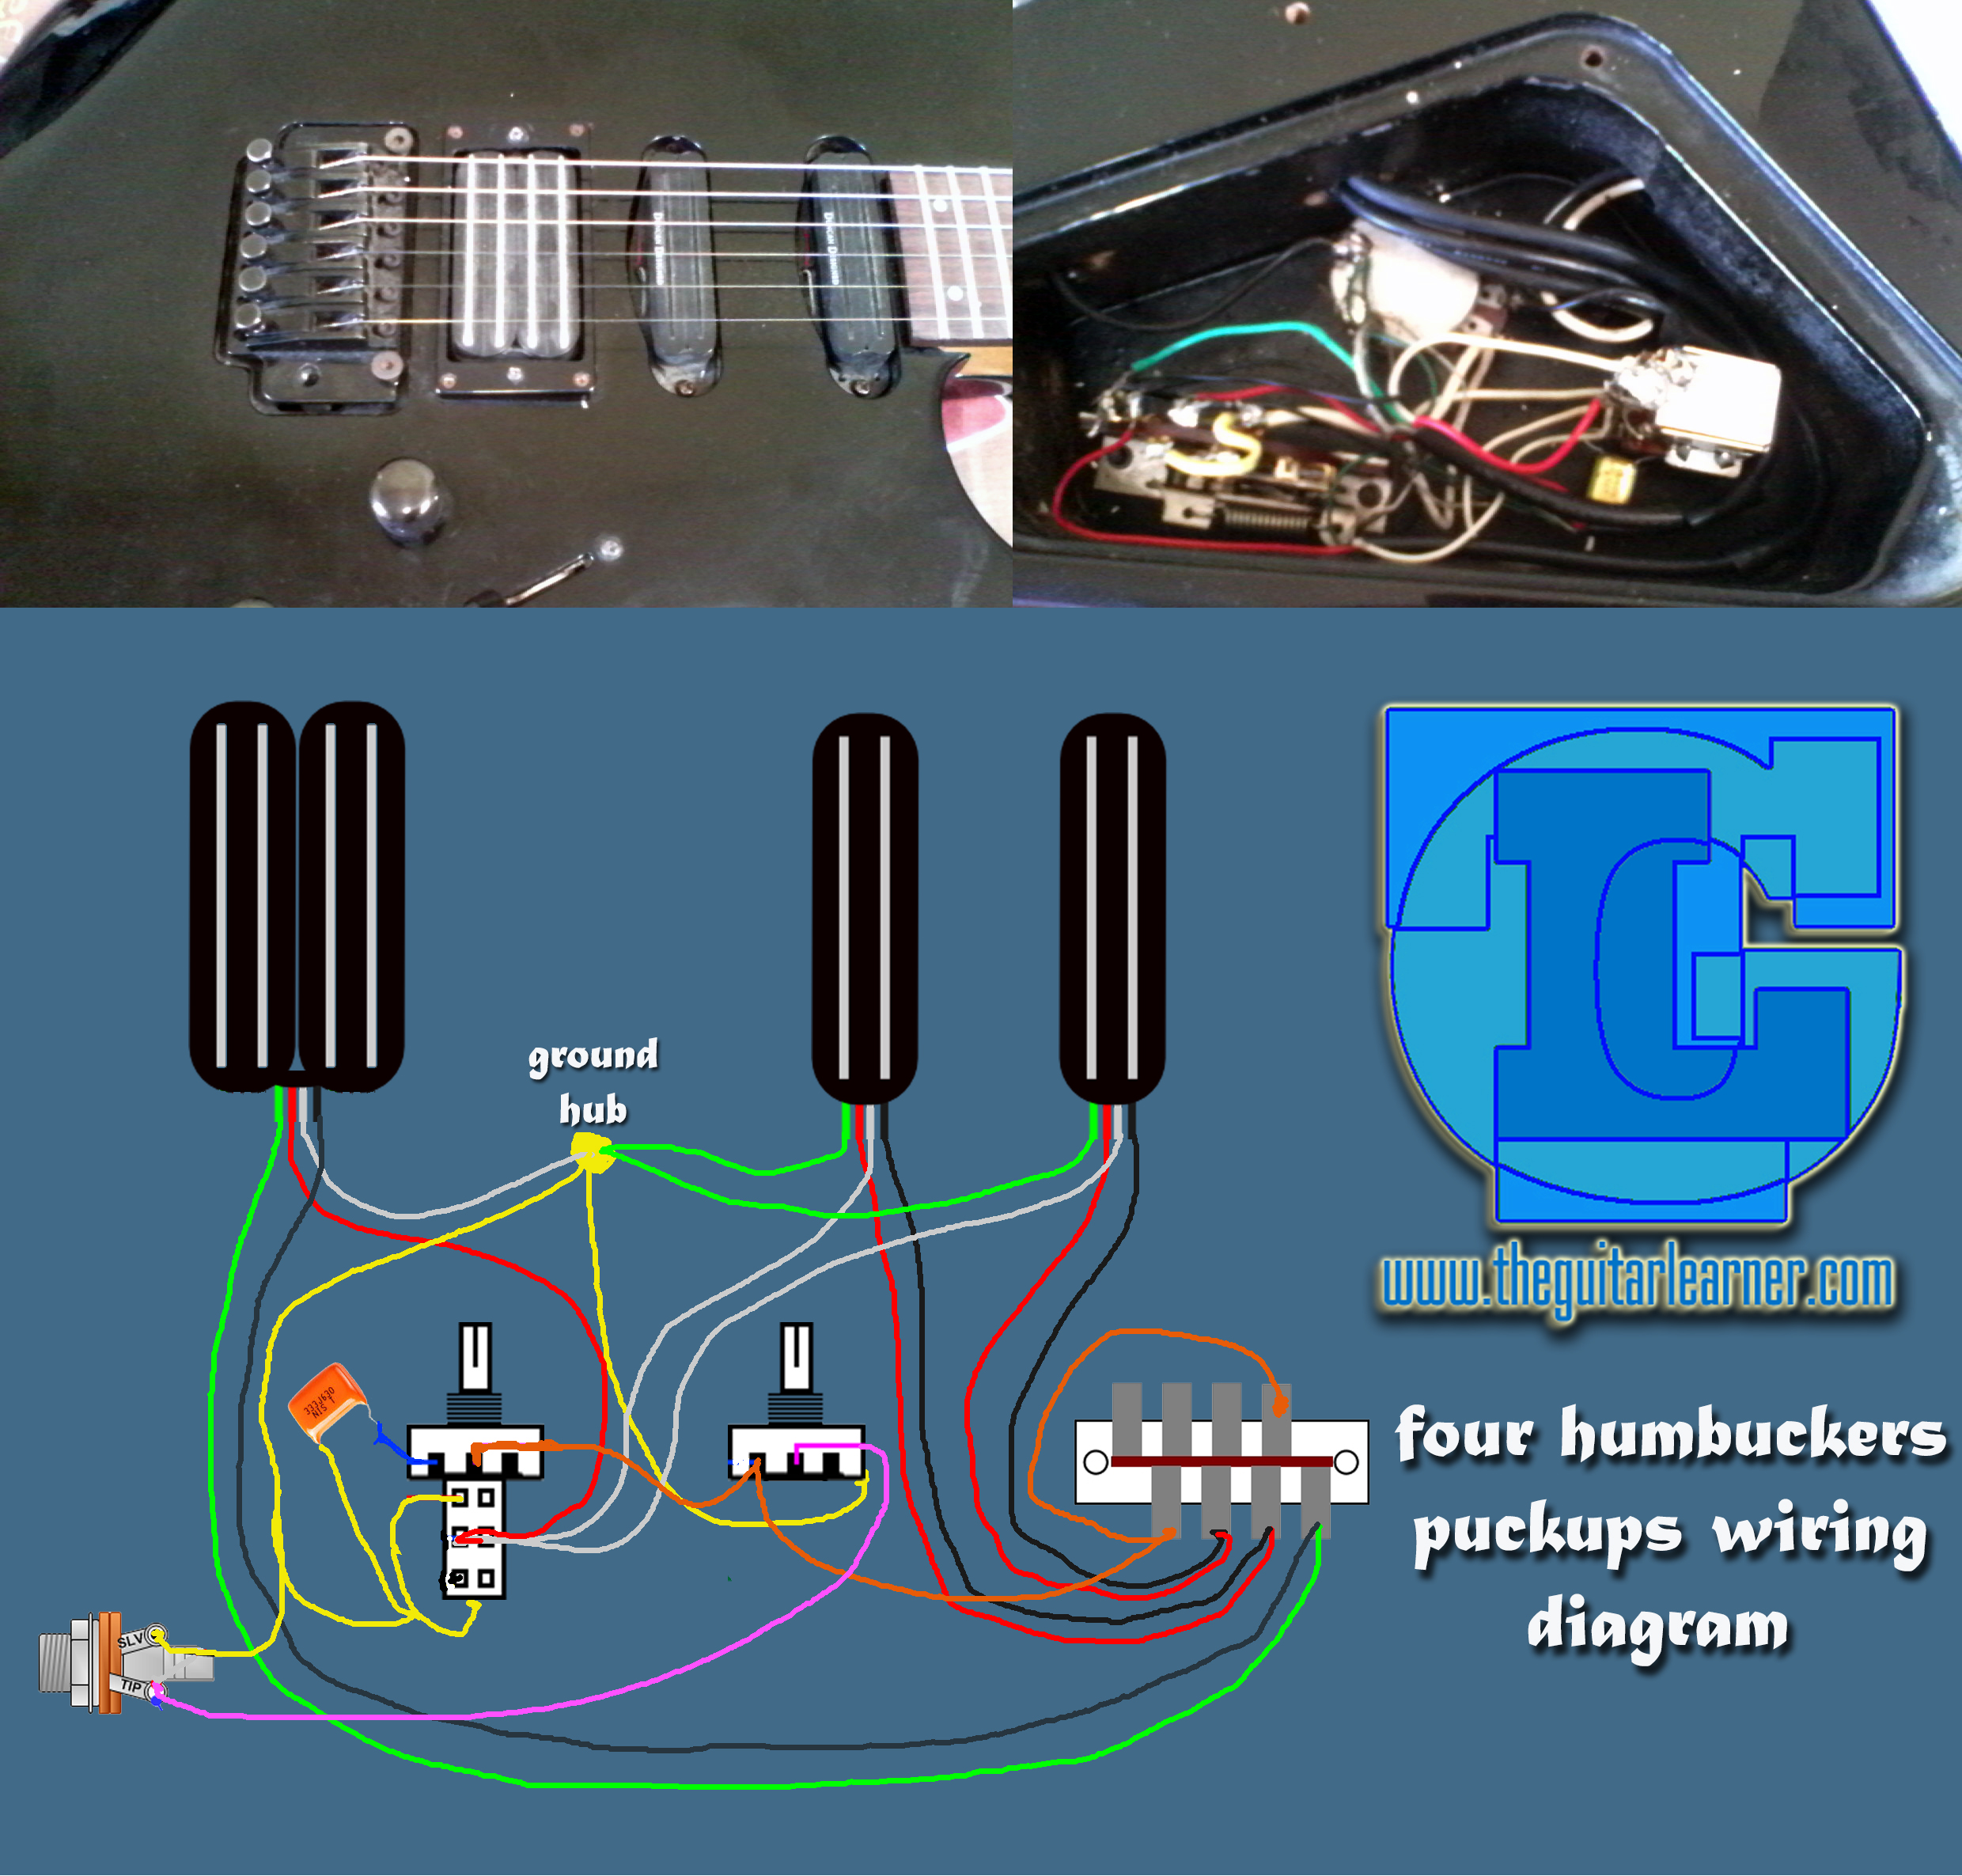 four humbuckers pickup wiring diagram hotrails and quadrail rh theguitarlearner com fernandes bass guitar wiring diagram